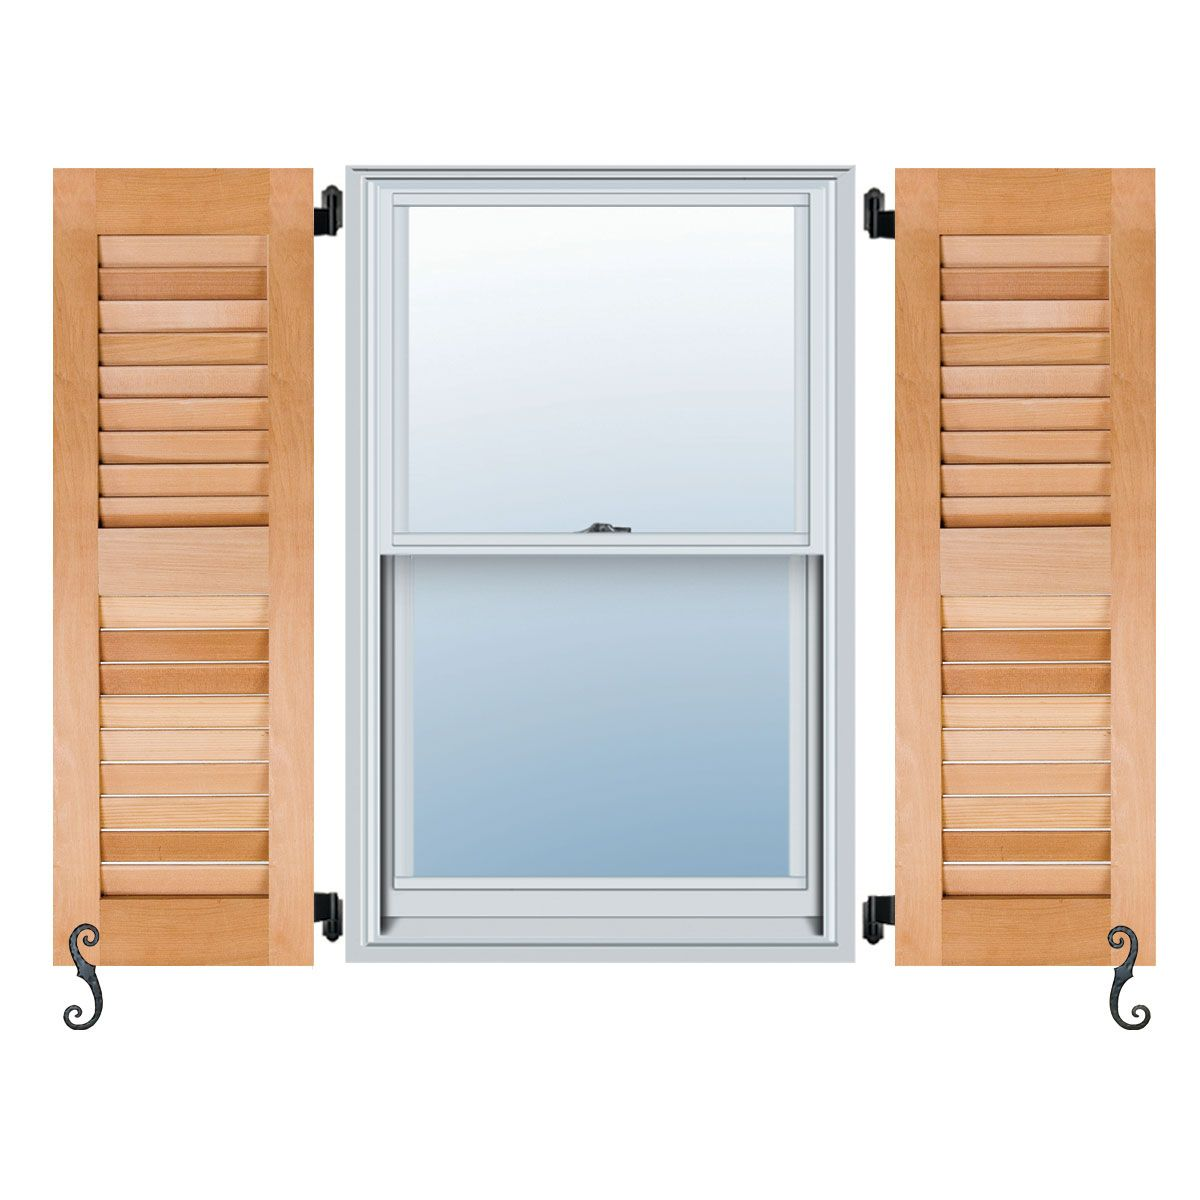 Architectural collection open louver wood shutters per - Raised panel interior window shutters ...